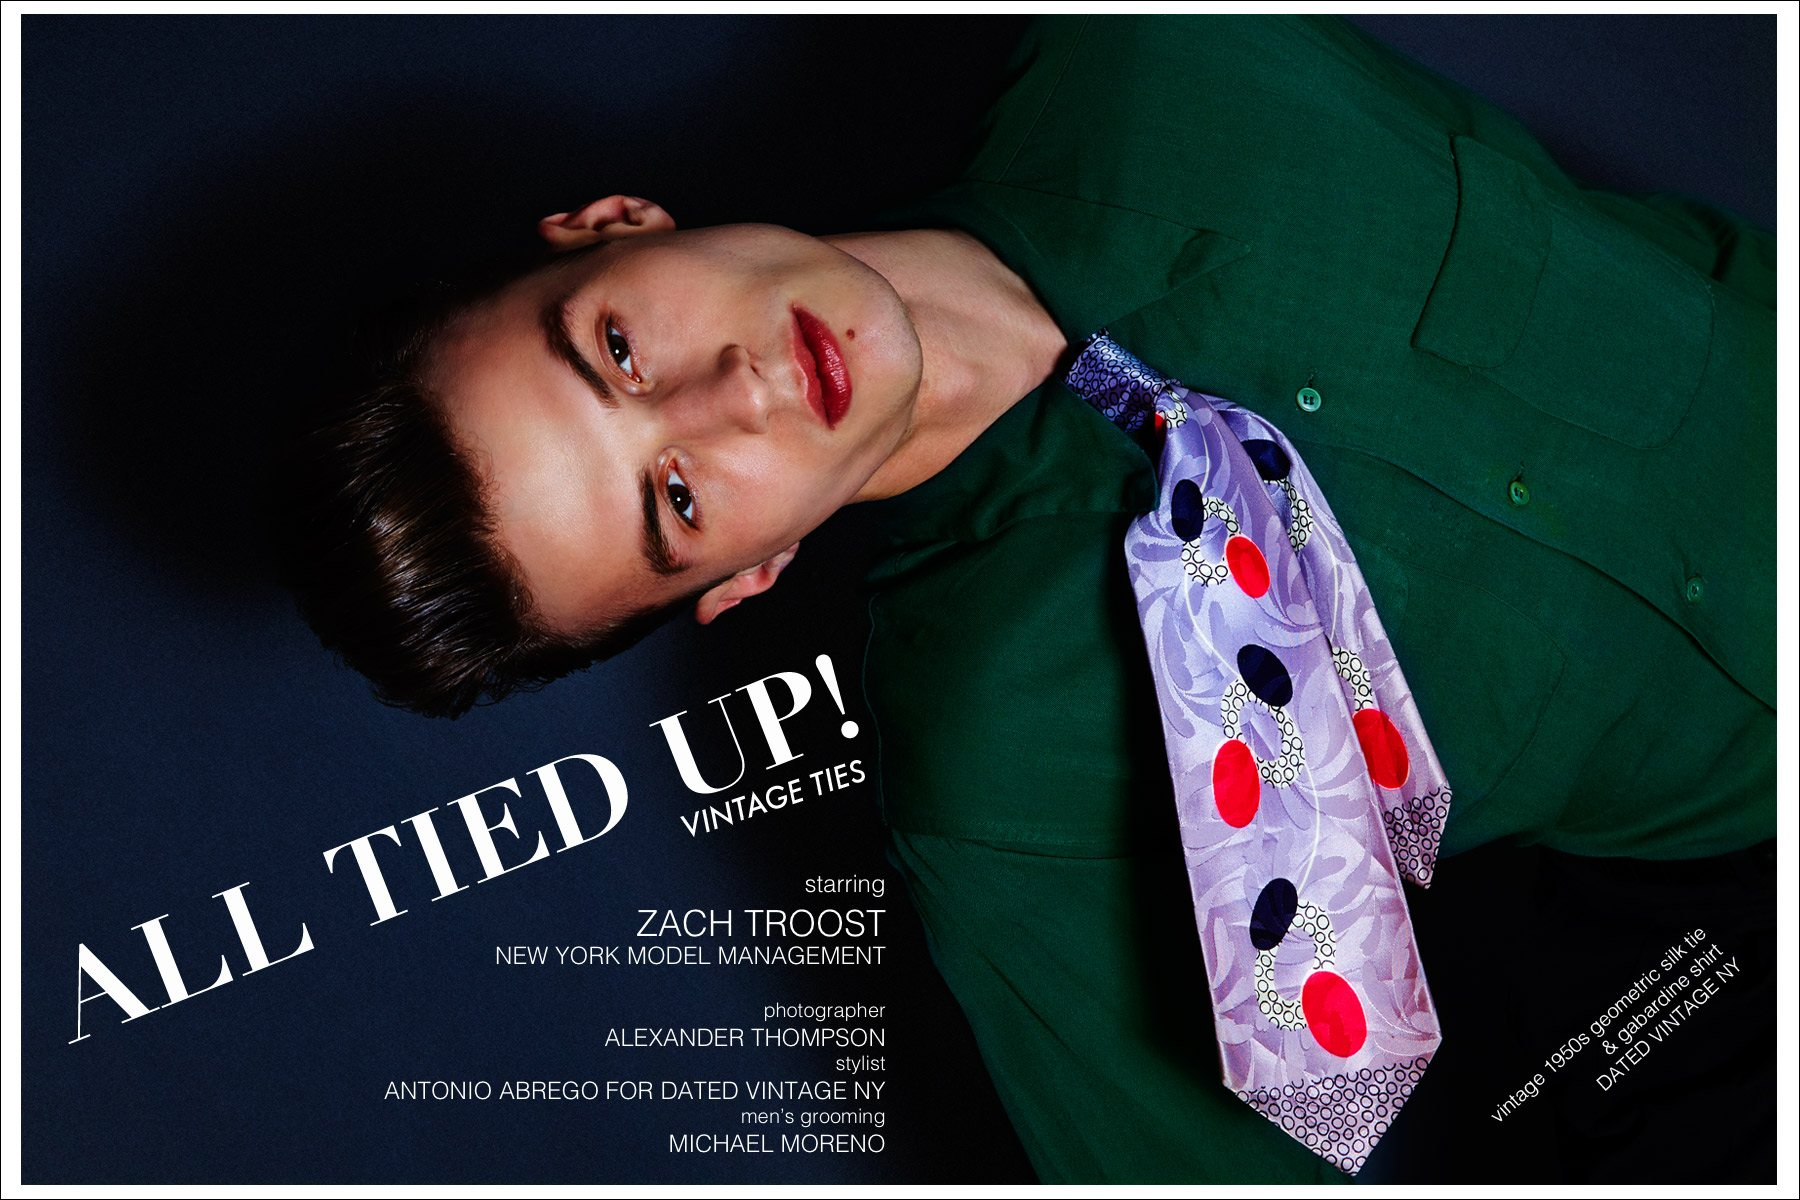 Model Zach Troost from New York Model Management, stars in a vintage menswear editorial